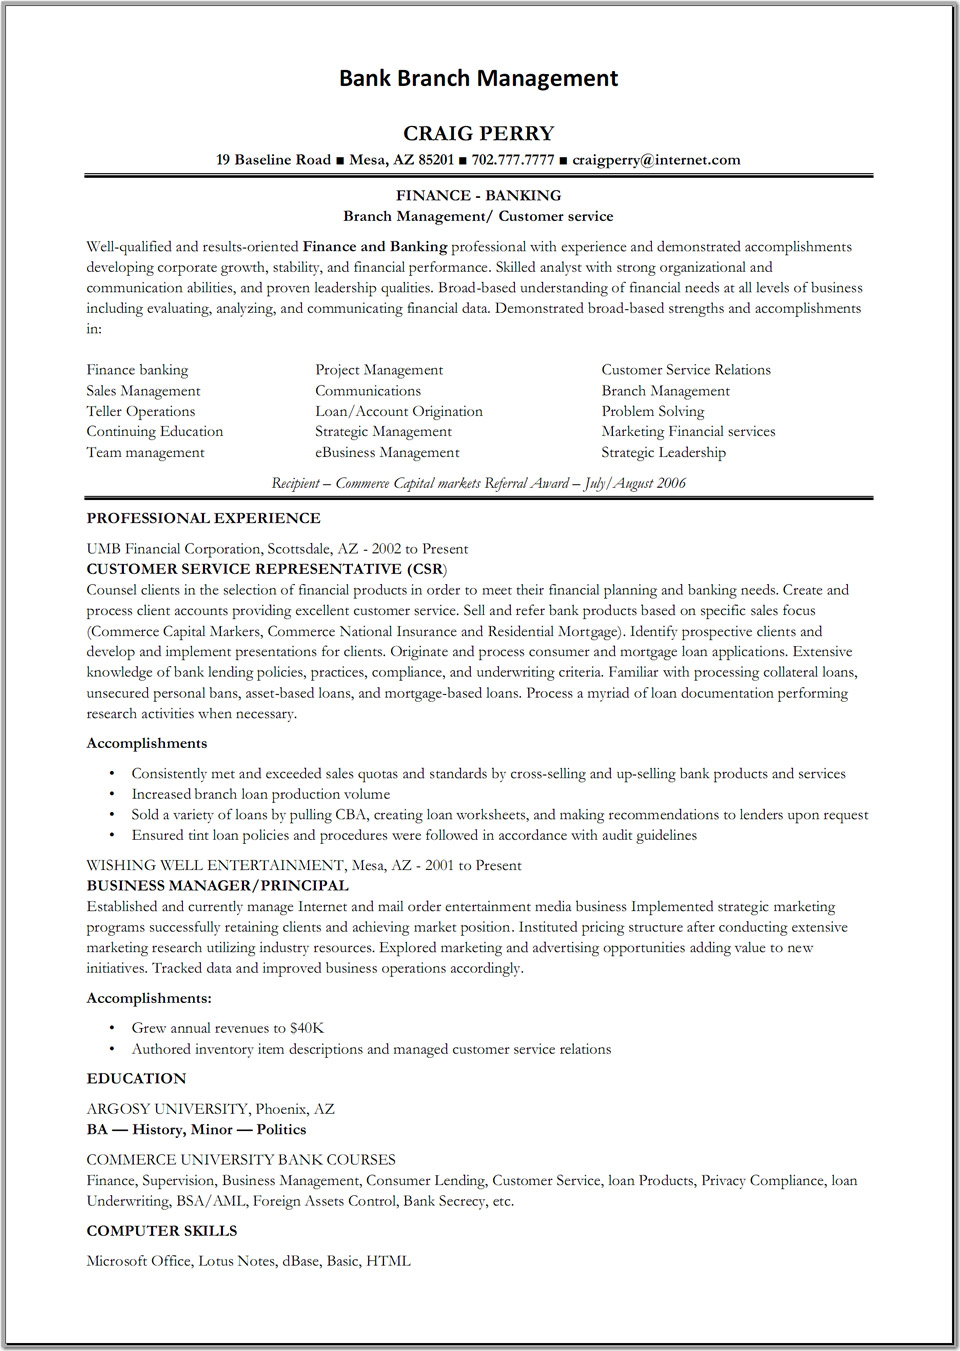 professional summary for bank teller resume bank branch managemennt professional summary for bank teller resume skills - Resume Skills For Bank Teller